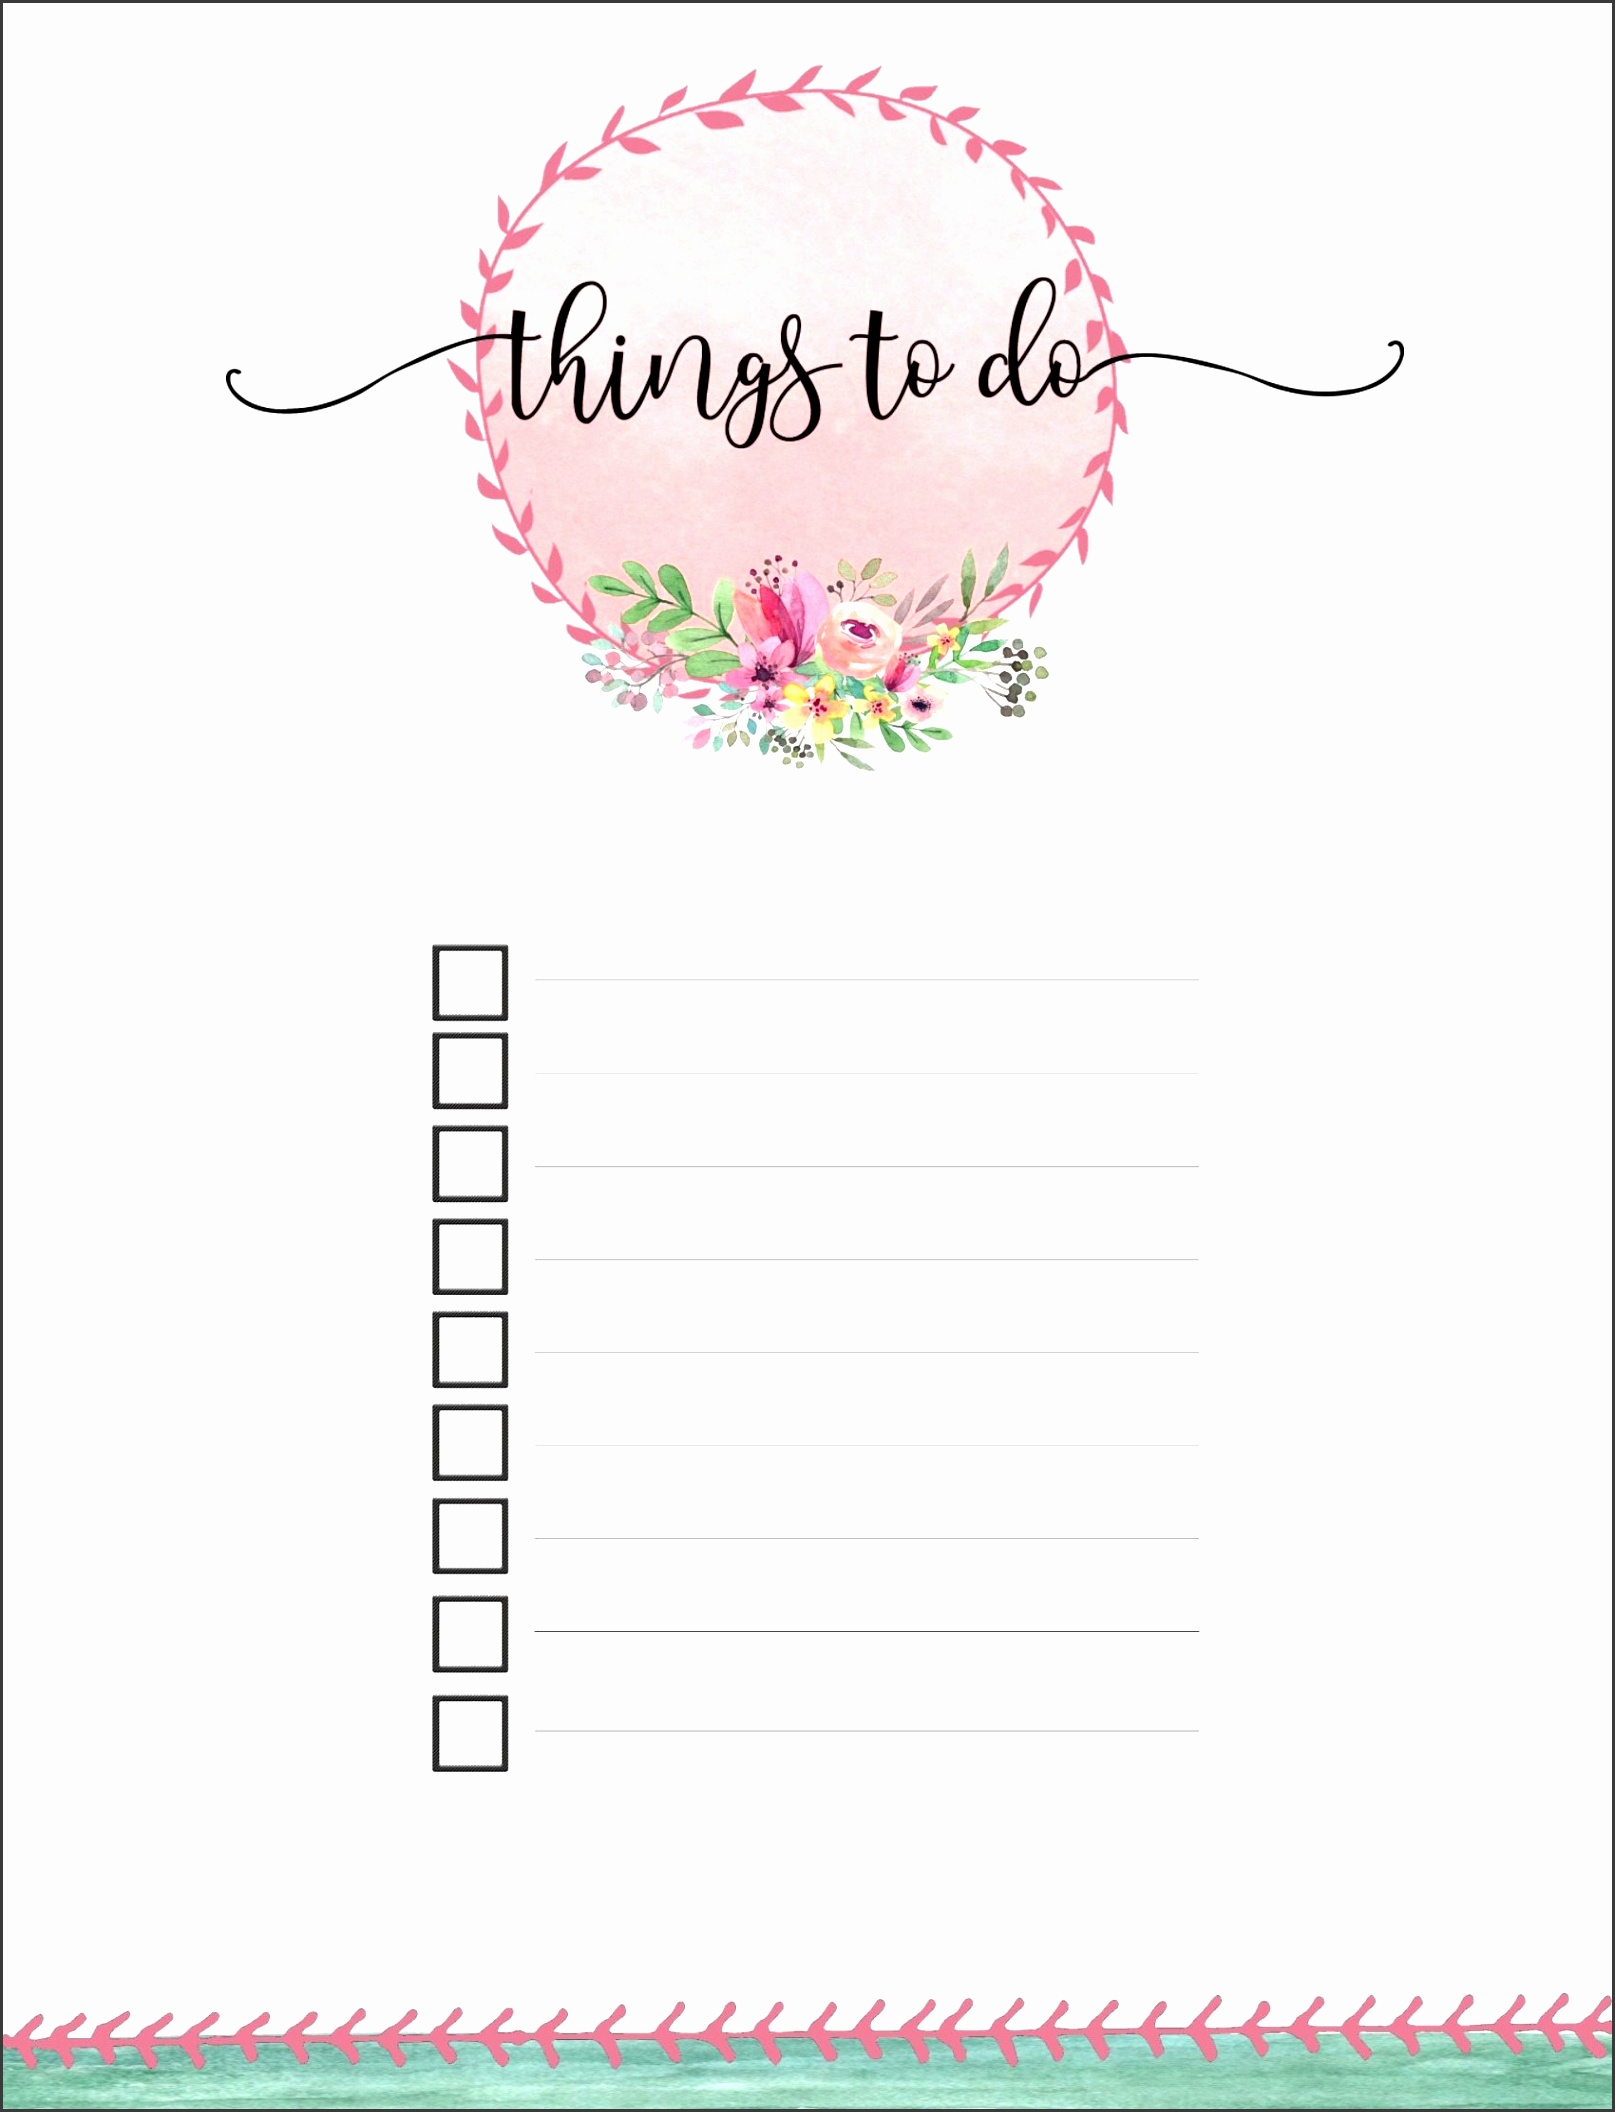 Other Checklist templates that you might find useful